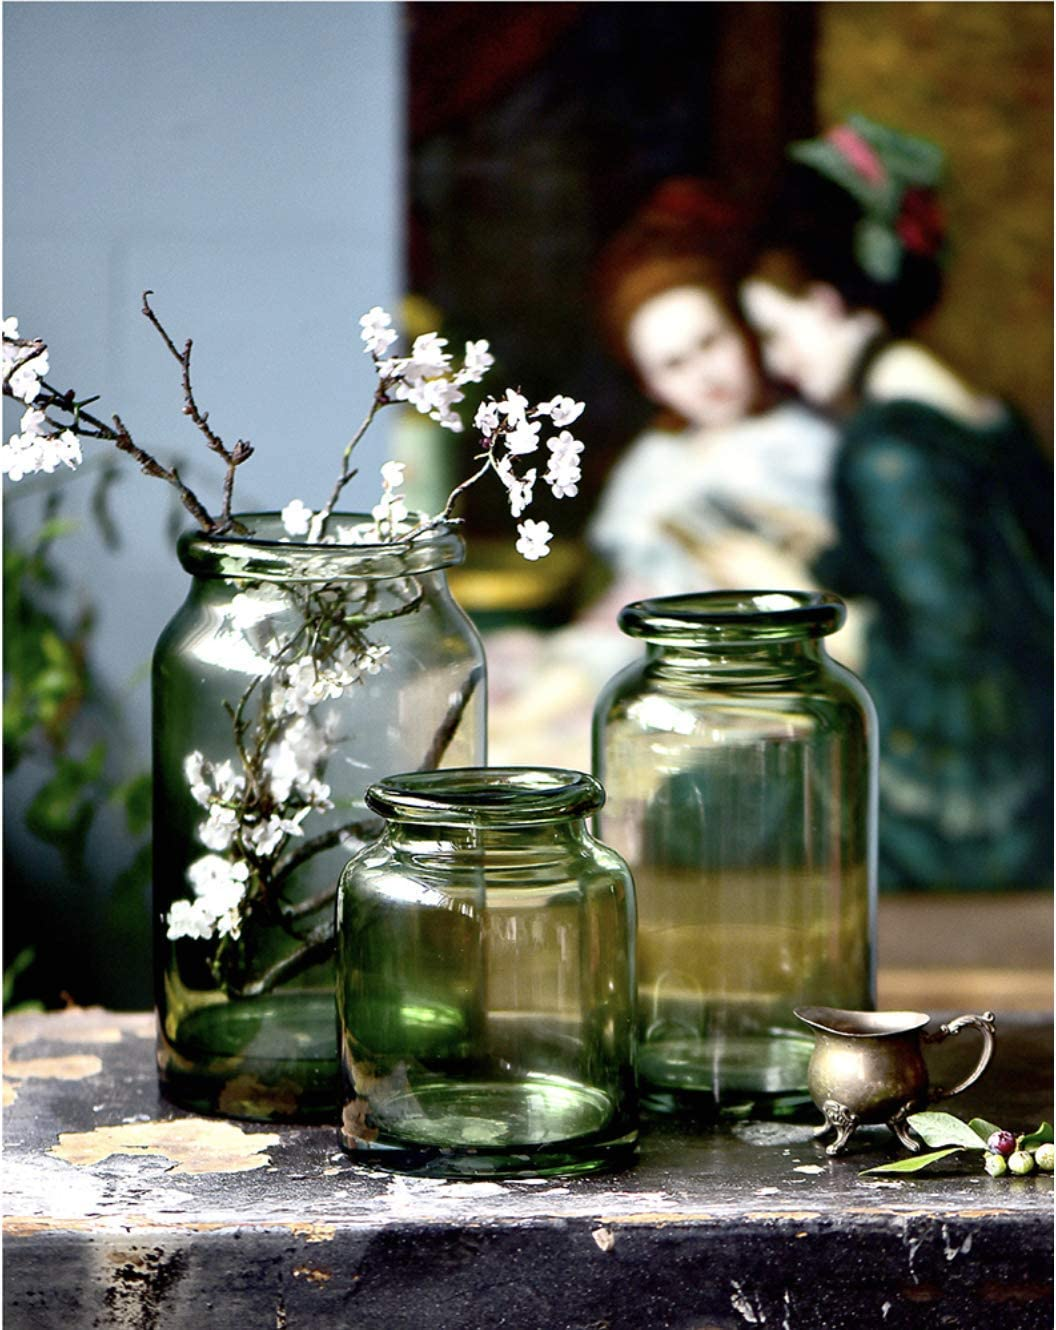 Noah Decoration European Hand-Blown and Handmade Light Green Glass Flower and Filler Vase and Containers for Home and Wedding Indoor and Outdoor Decoration Size Large